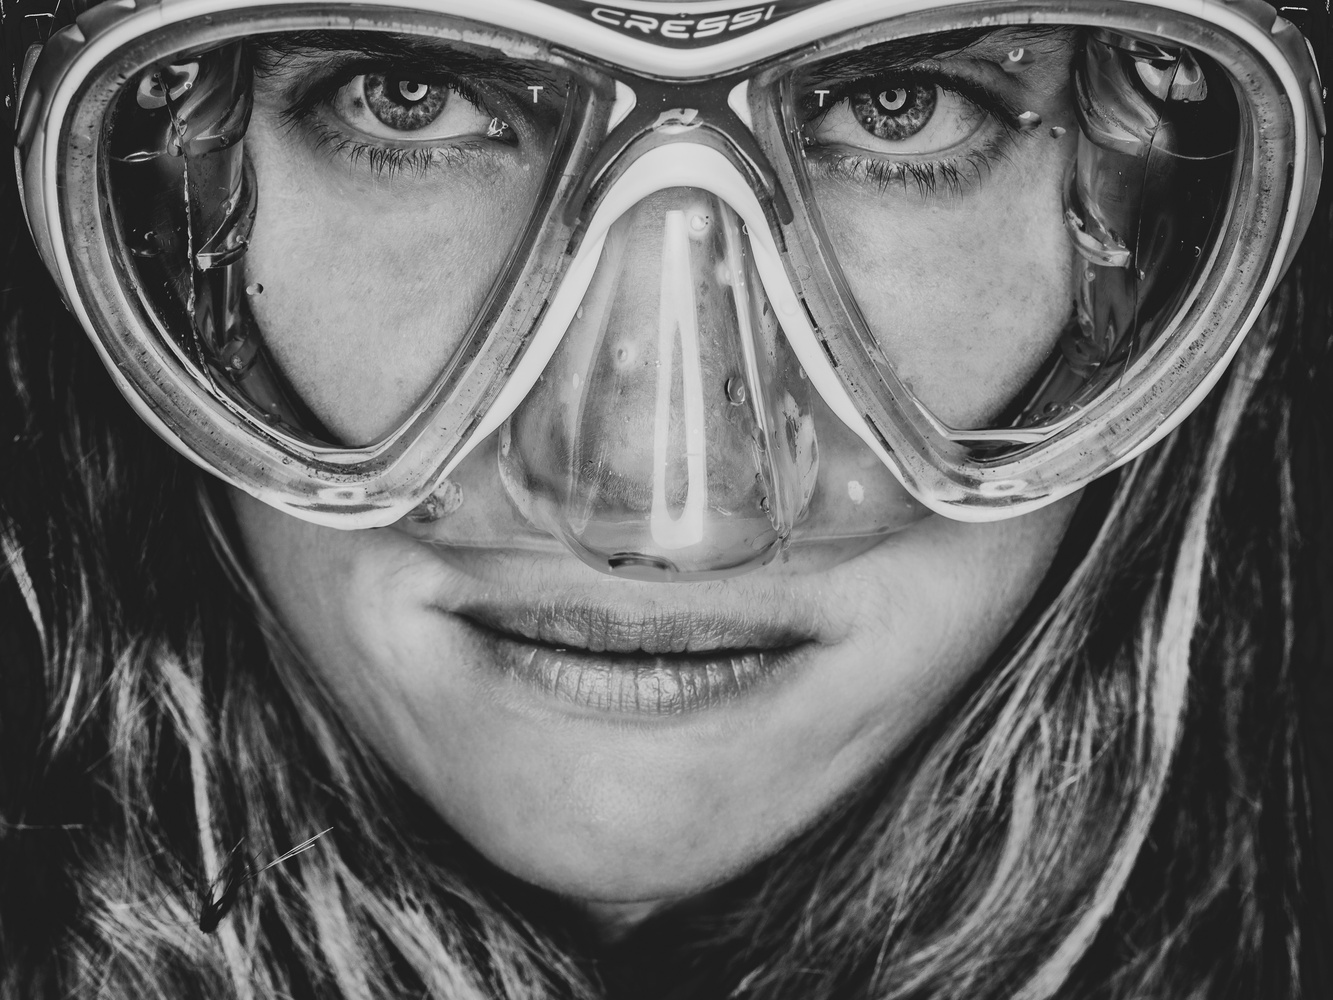 Faces of Divers - Anthea Iles by Tomasz Kowalski